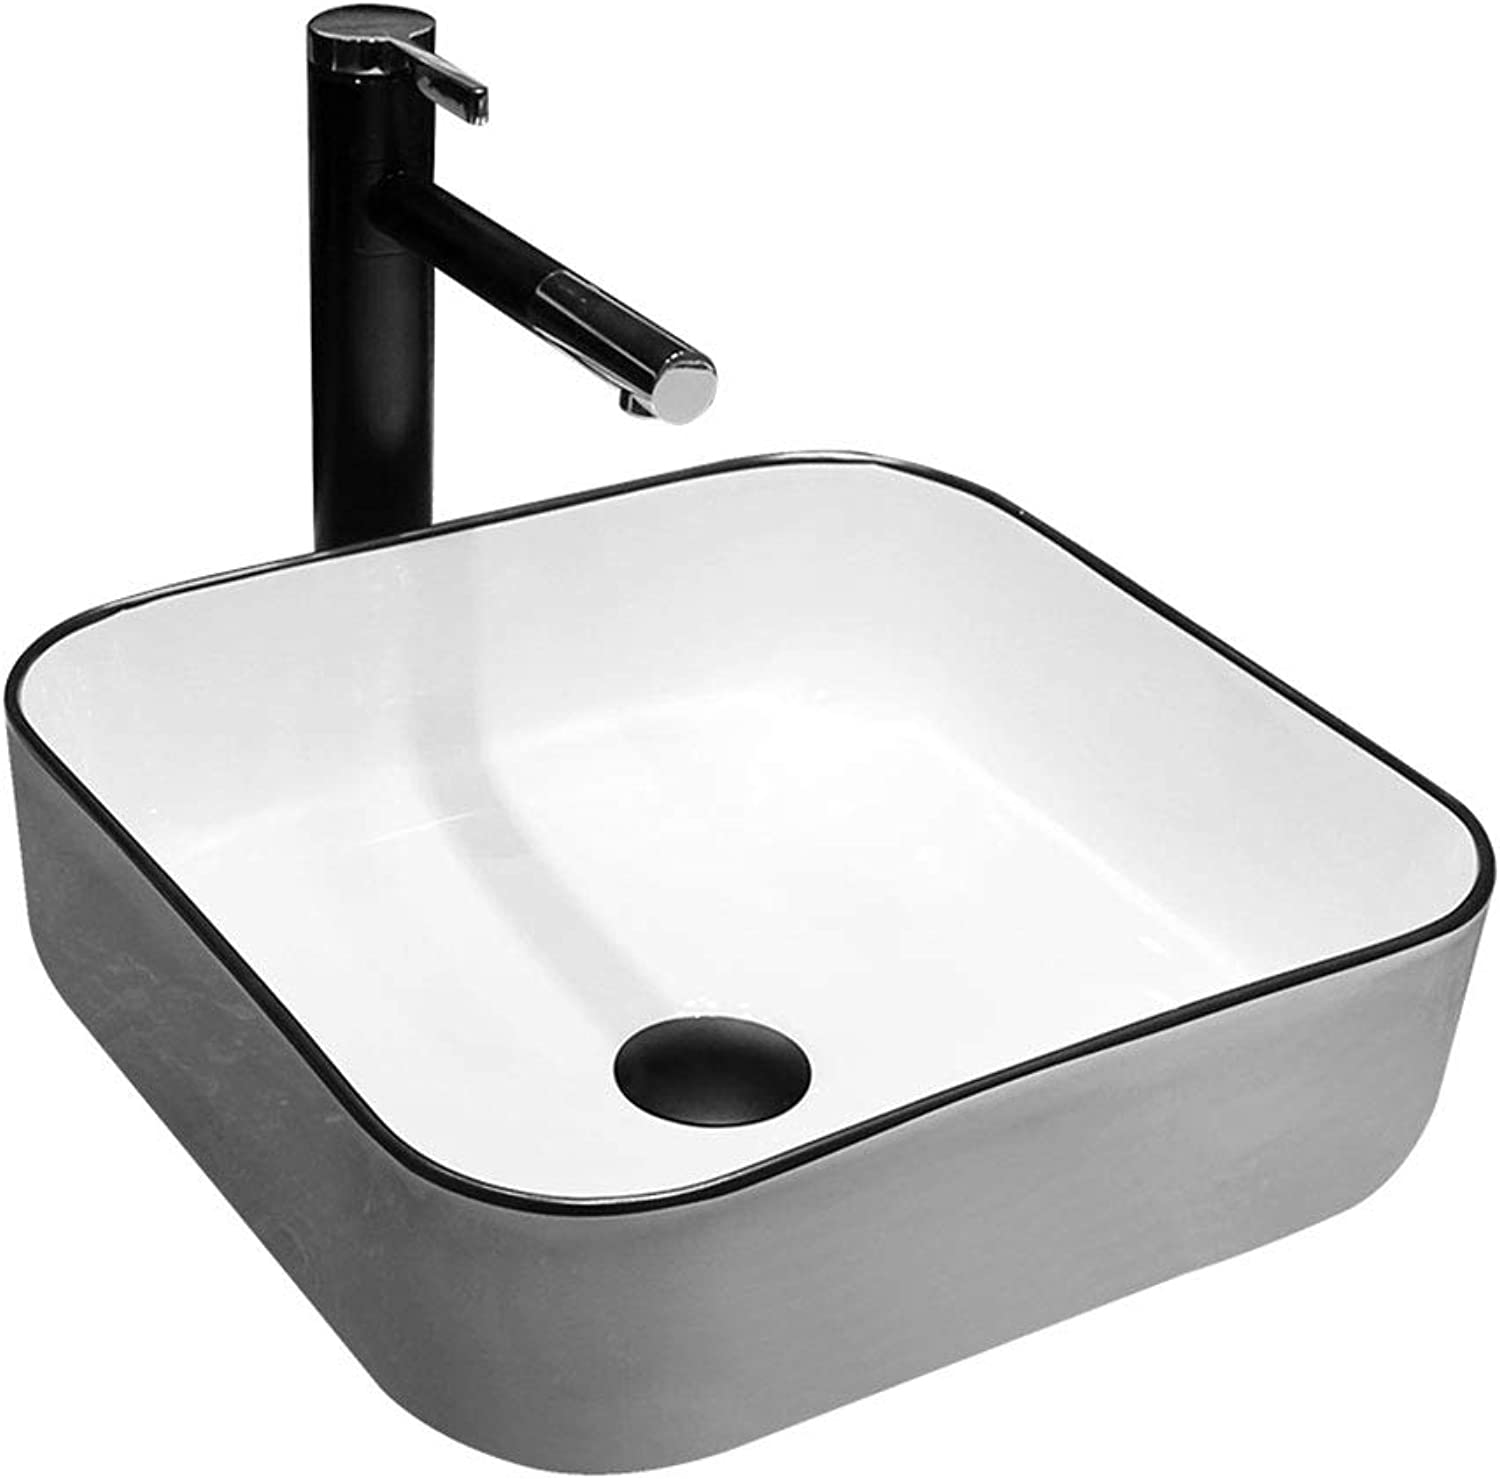 Bathroom Square Small Washbasin Sink Jingdezhen Ceramic Hotel Anti-splash Wash Basin Bathroom sinks